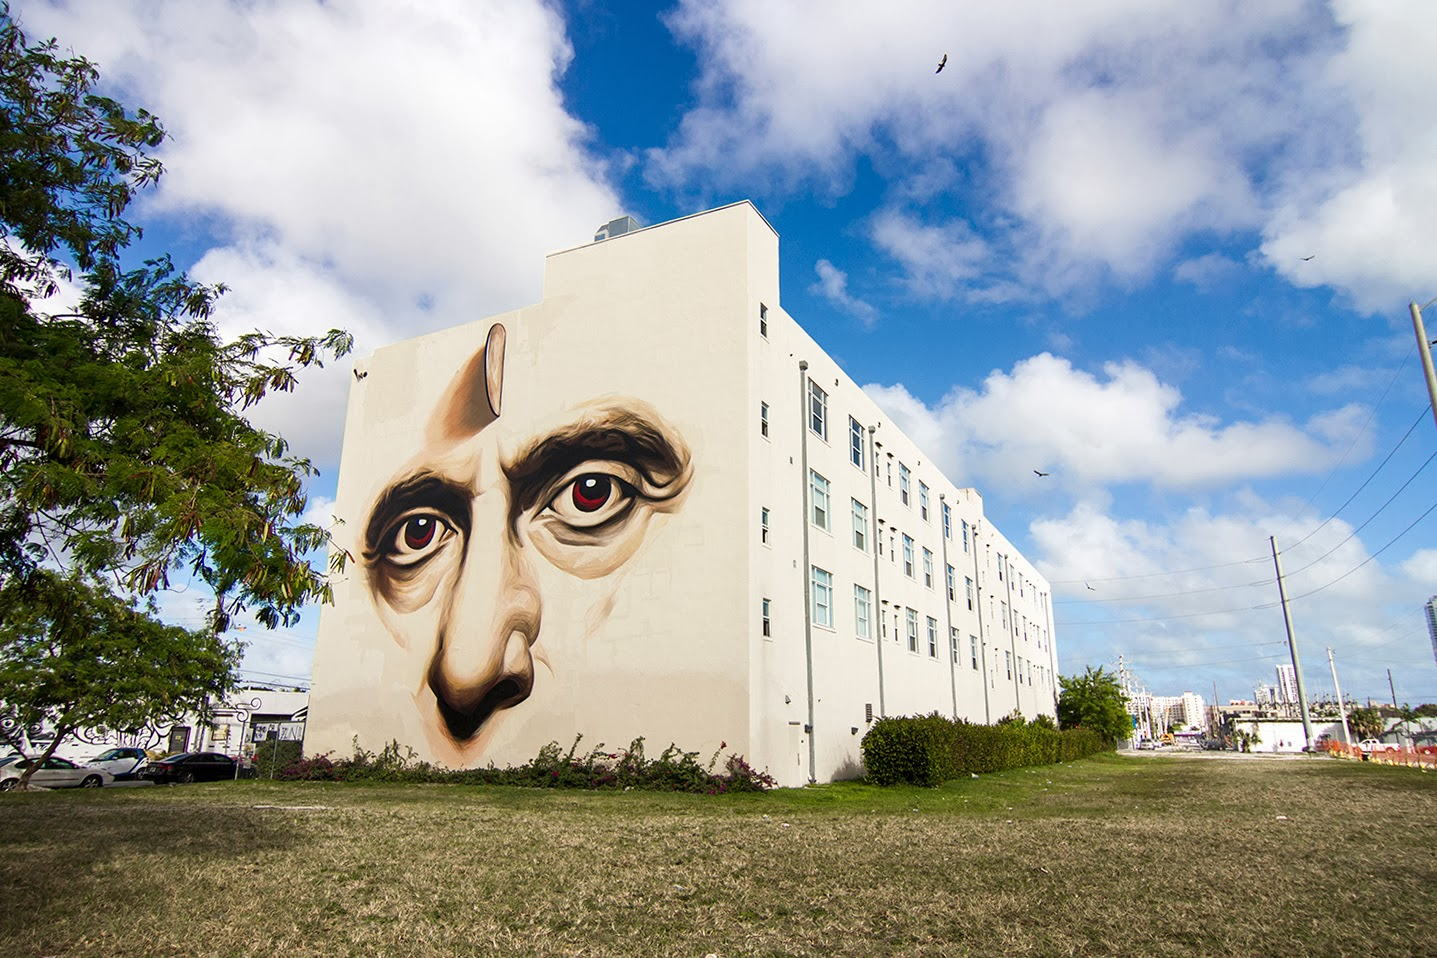 ino-in-heaven-with-you-new-mural-in-wynwood-miami-08